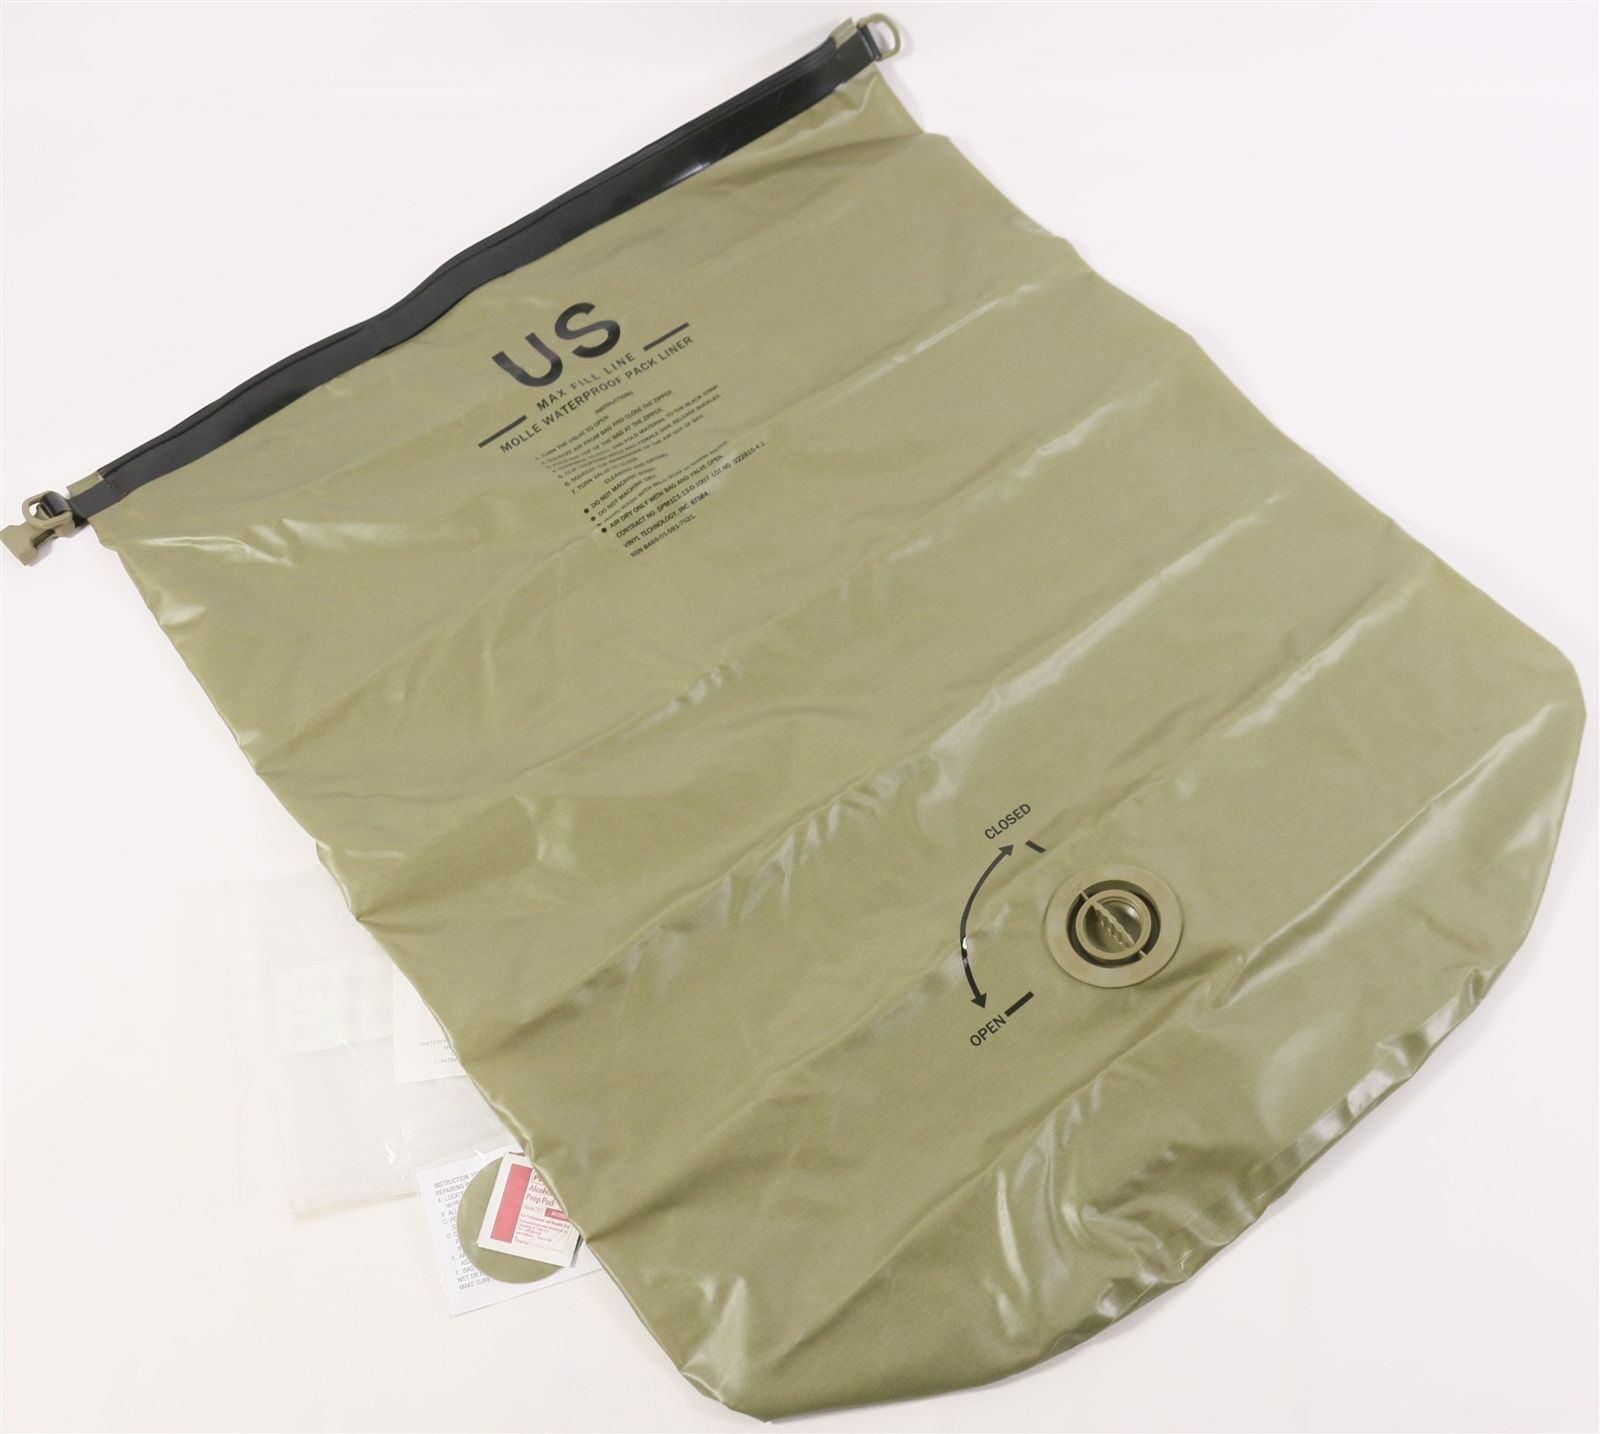 USGI Waterproof Pack Liner Assembly for Large Molle Ruck